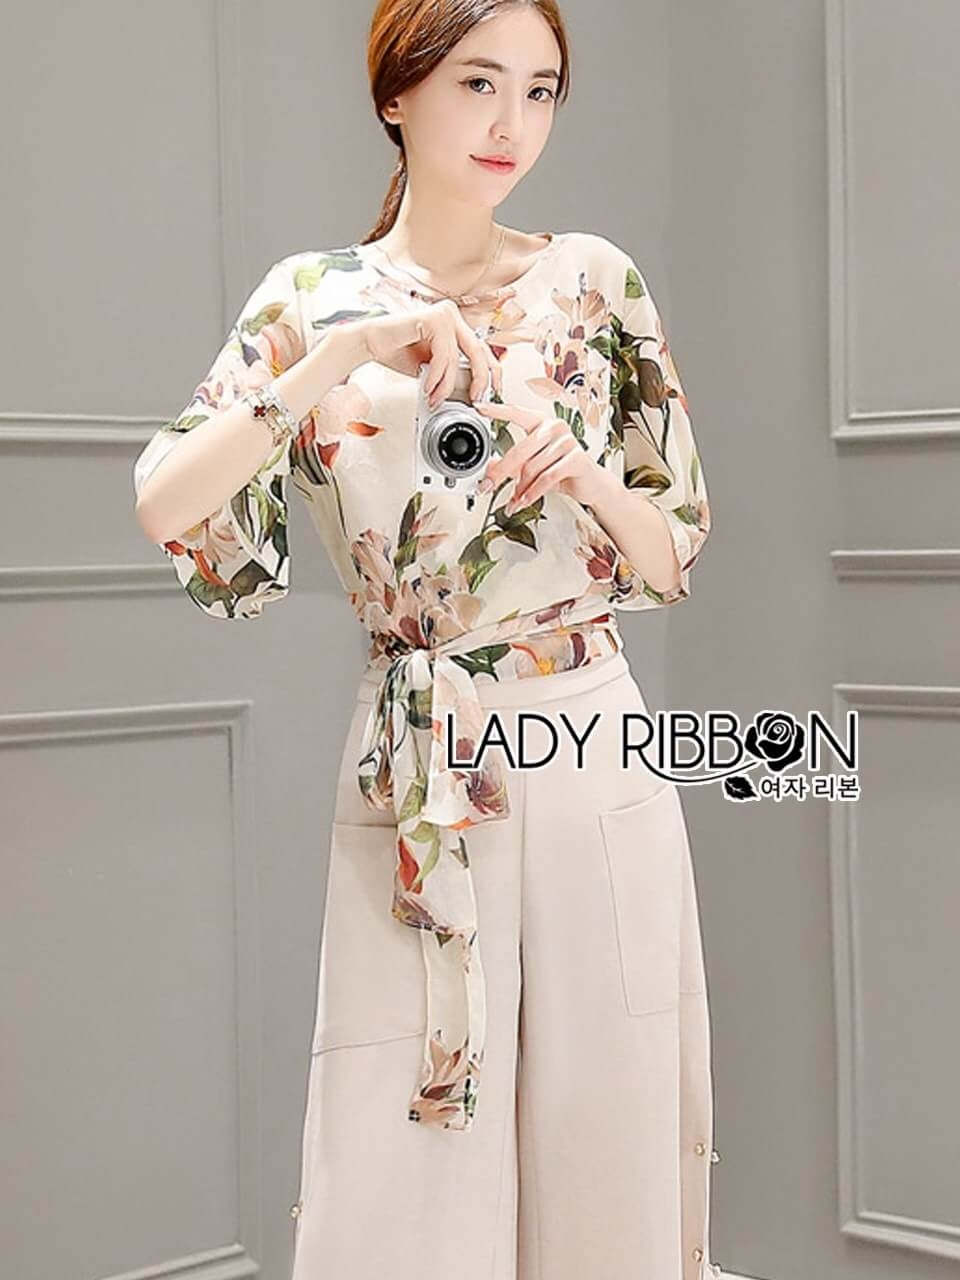 &#x1F380 Lady Ribbon's Made &#x1F380 Lady Feona Sweet Vintage Floral Printed Top and Culottes Set